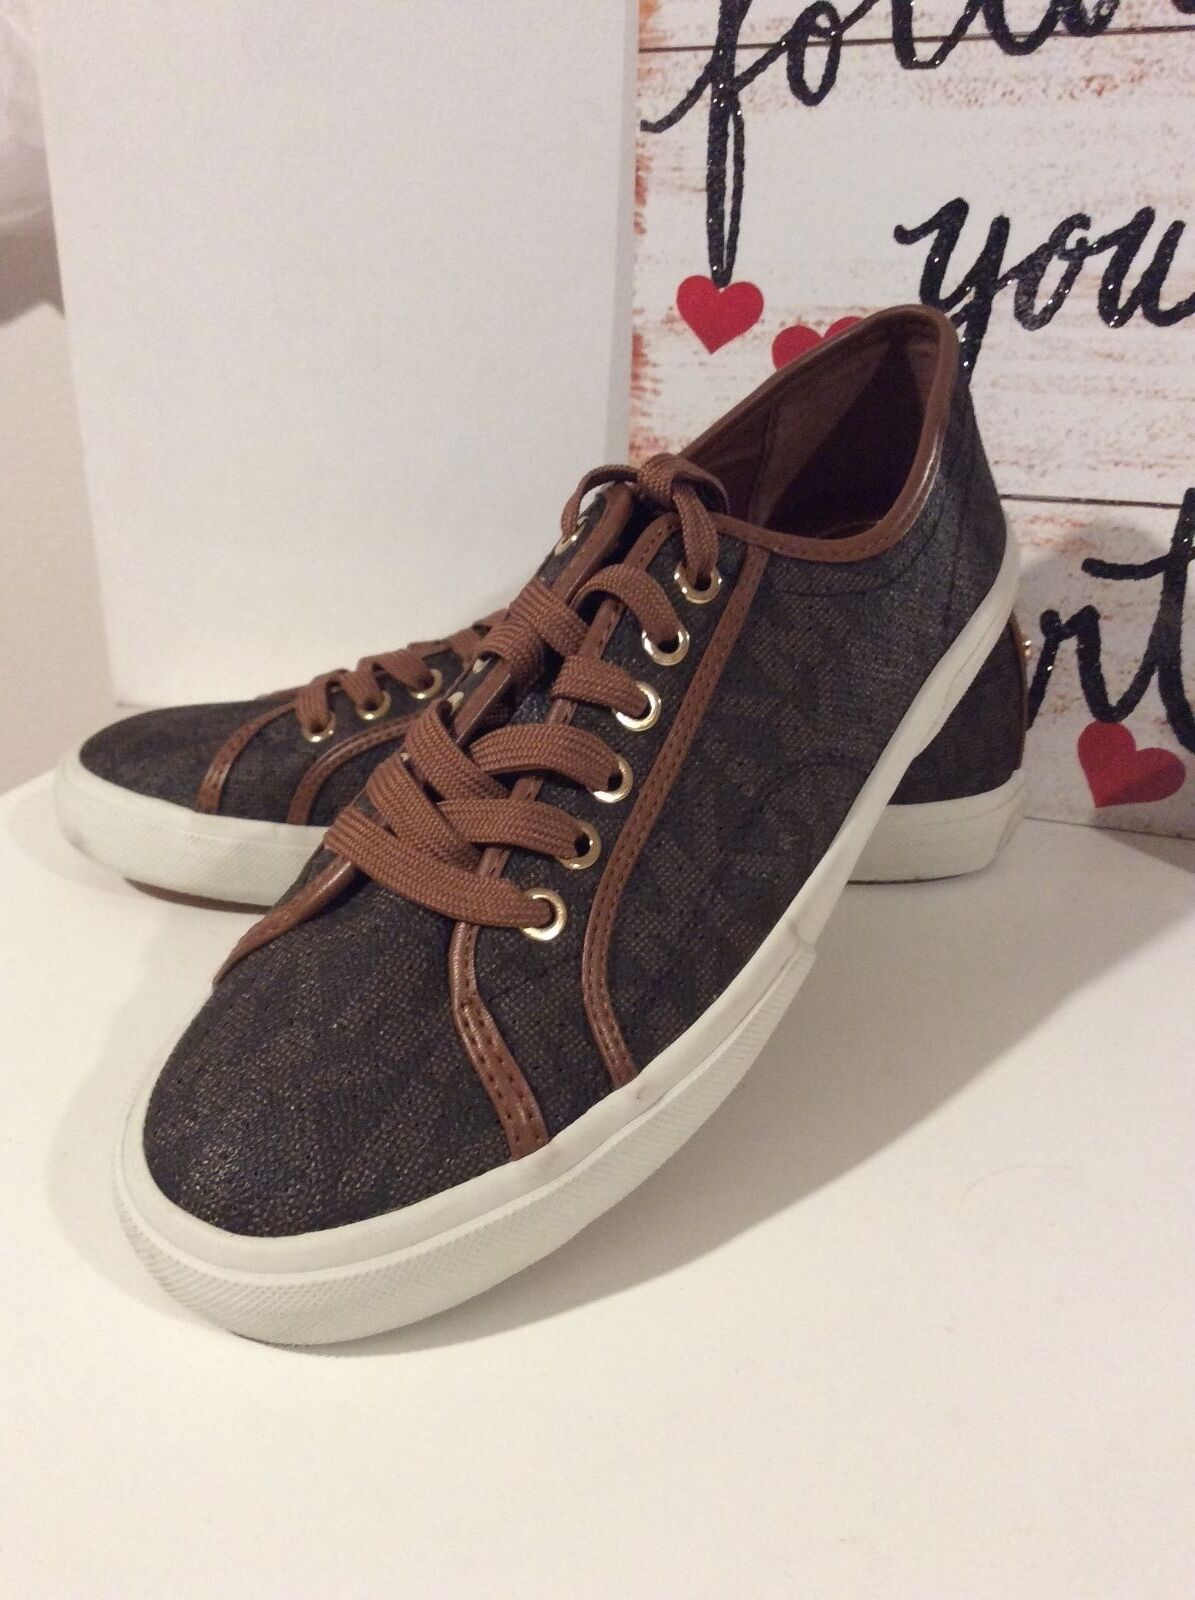 Michael Kors Signature Brown Logo Sneakers Size.8.5